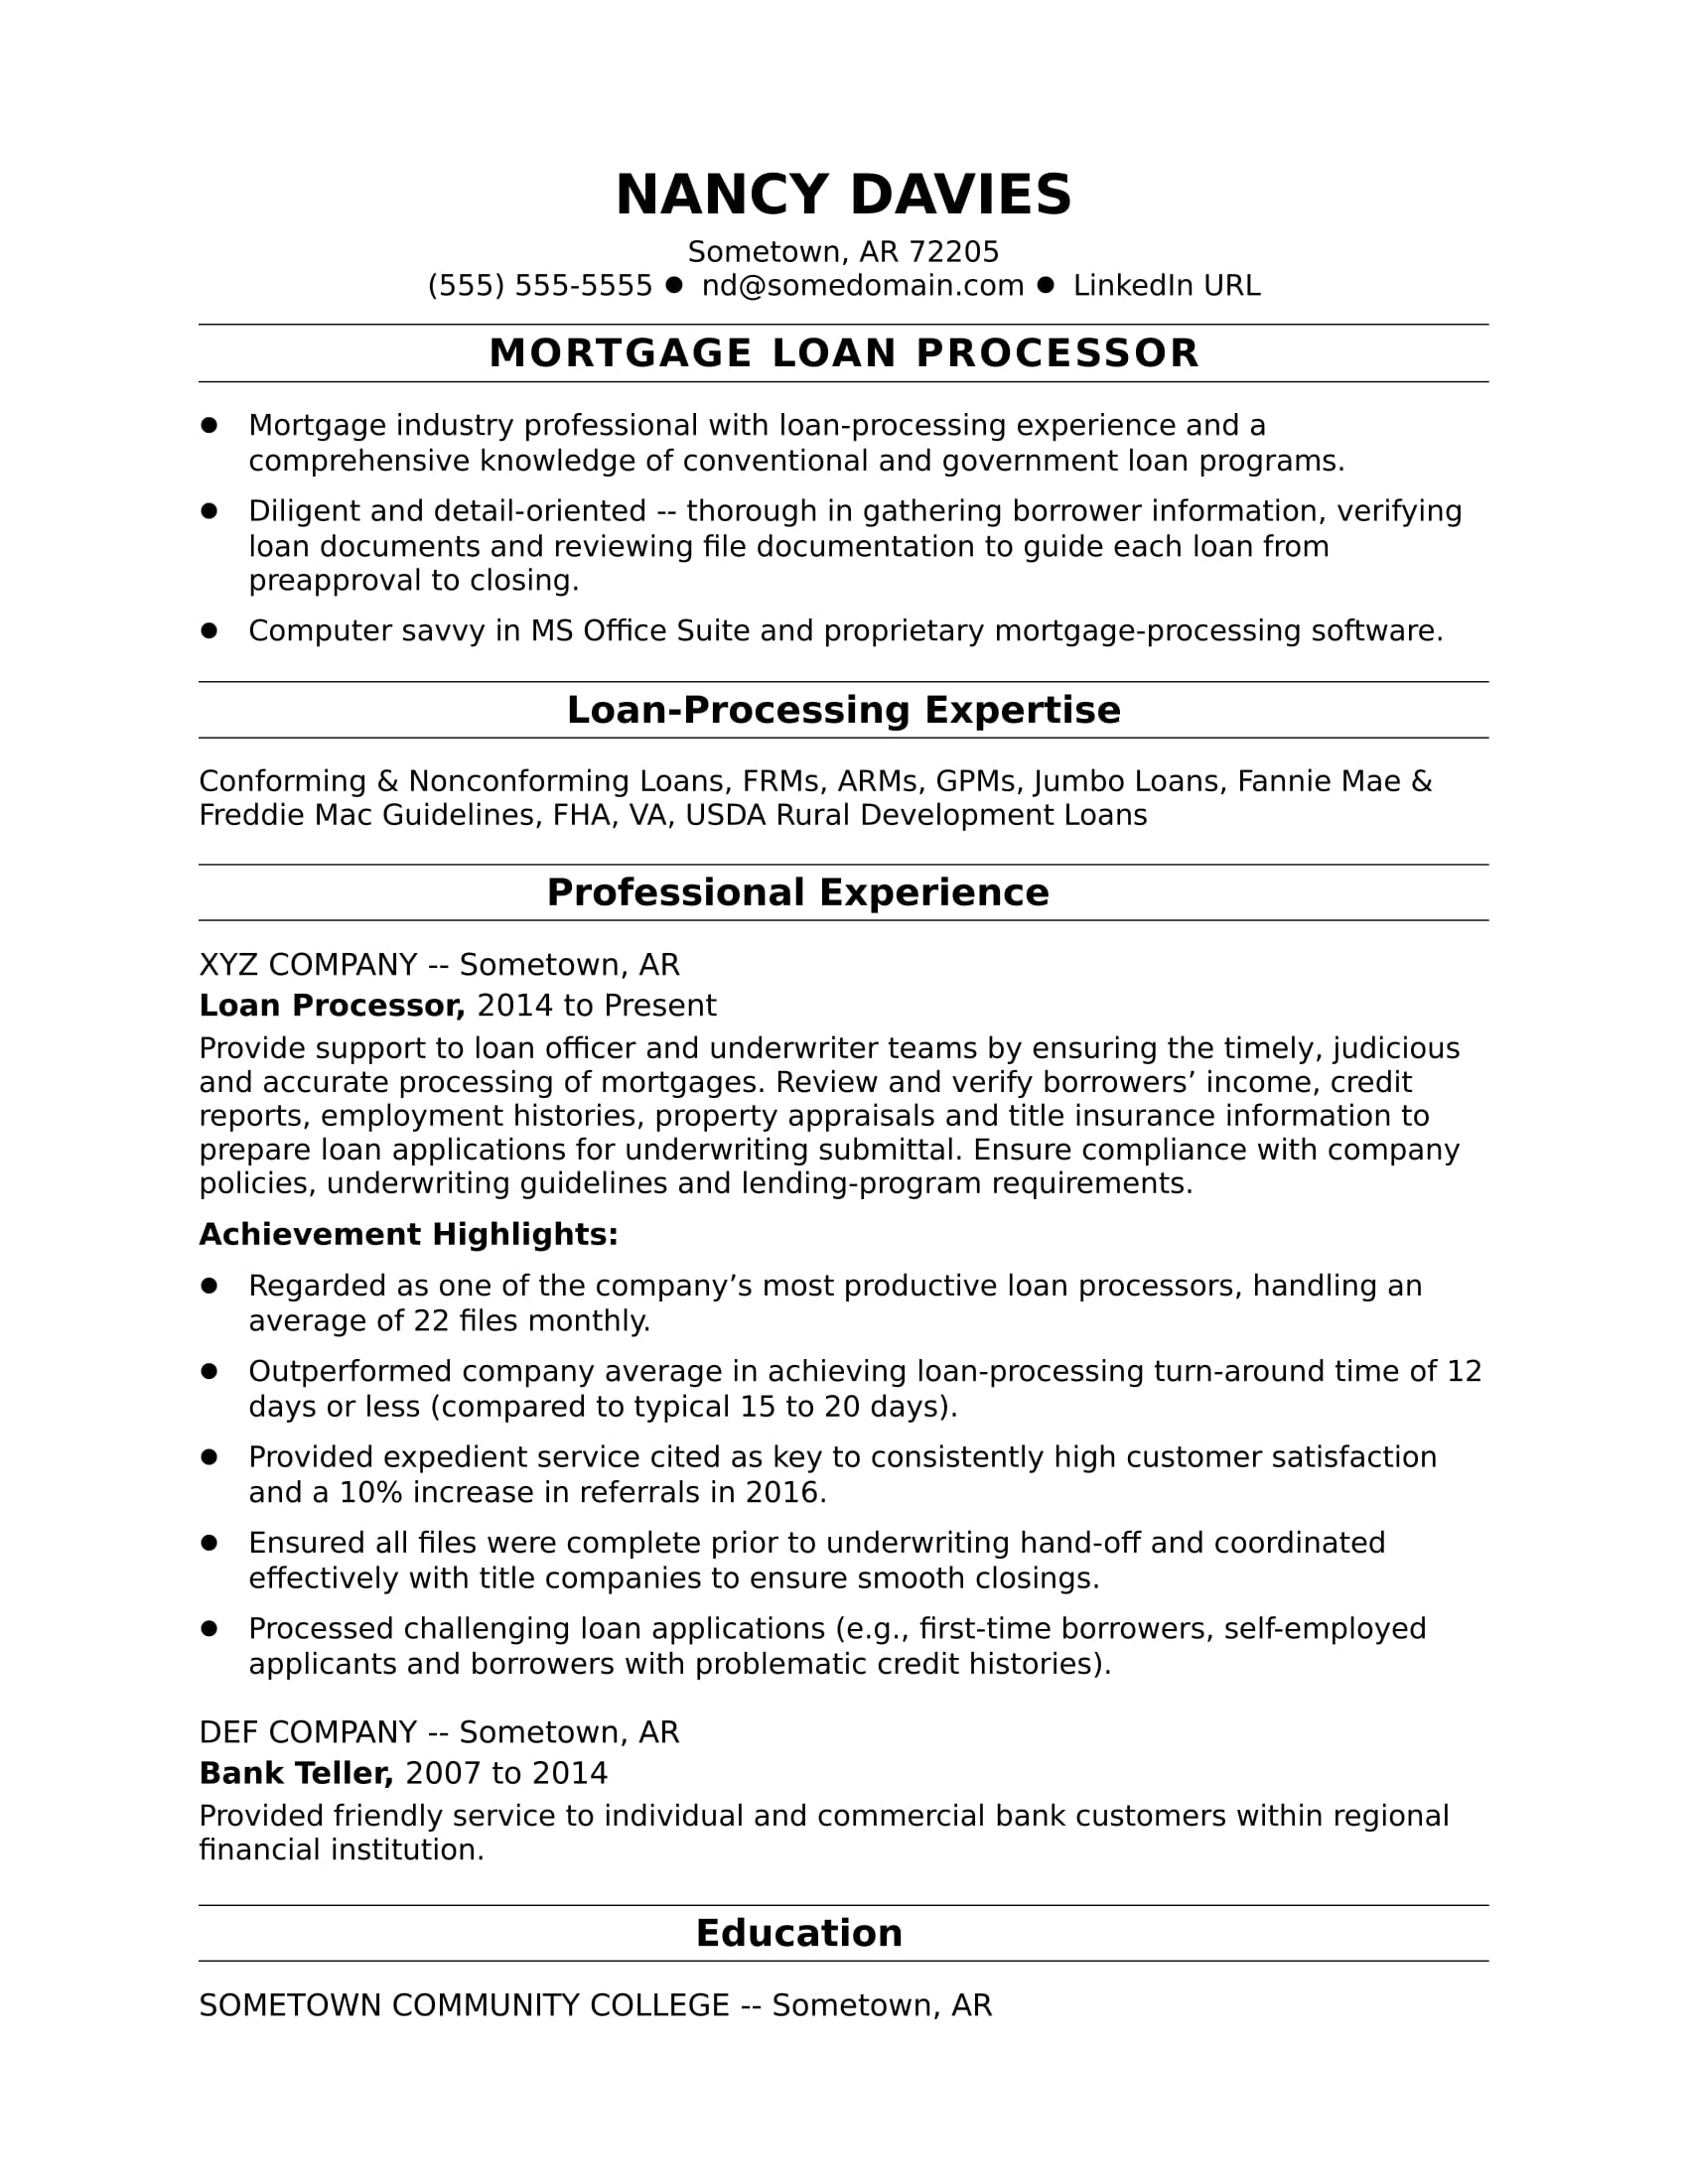 Sample Resume For A Mortgage Loan Processor  Mortgage Underwriter Resume